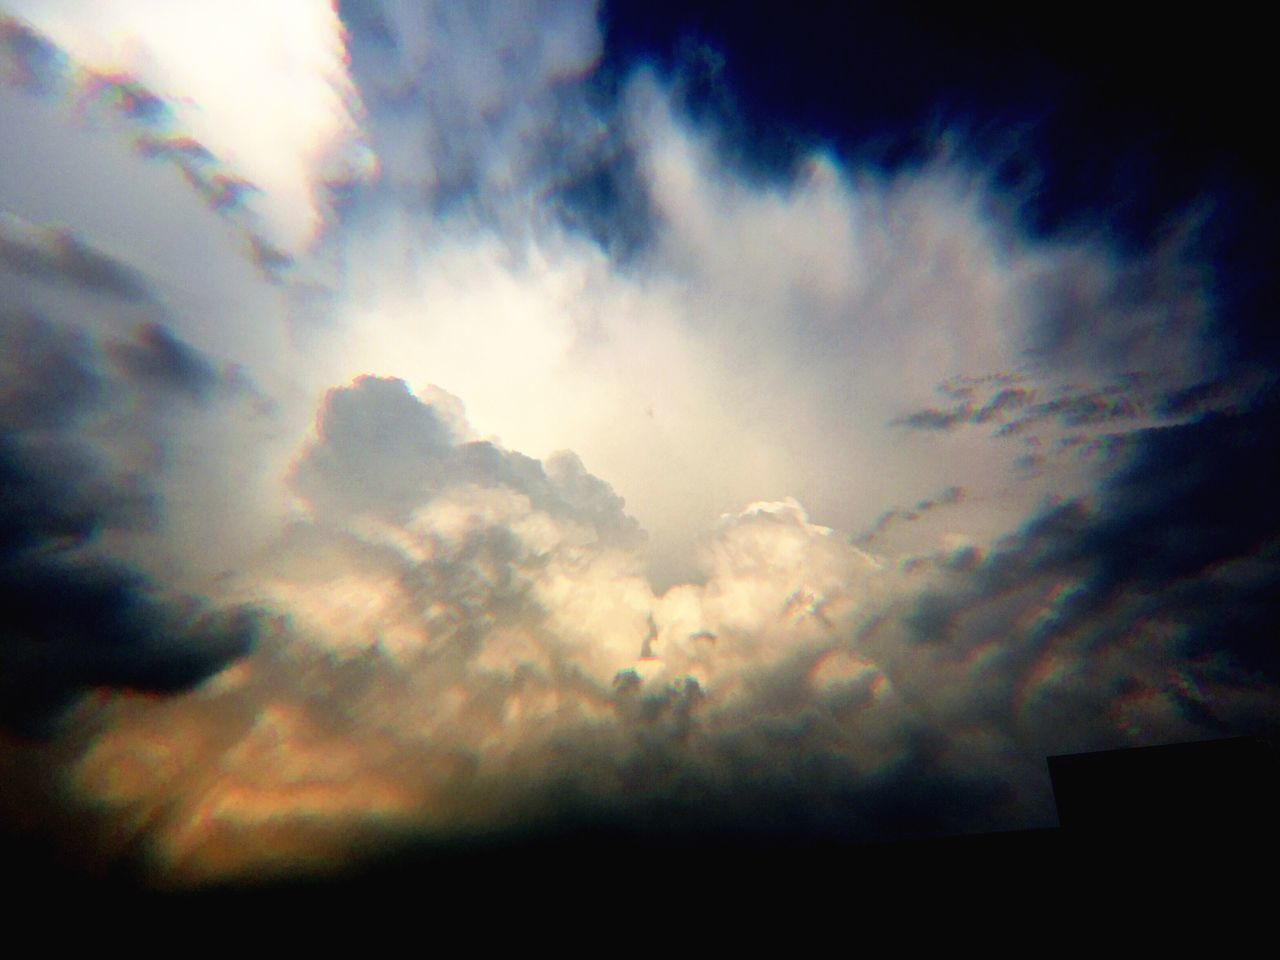 sky, cloud - sky, nature, beauty in nature, low angle view, cloudscape, scenics, majestic, weather, no people, tranquility, sky only, outdoors, sunset, day